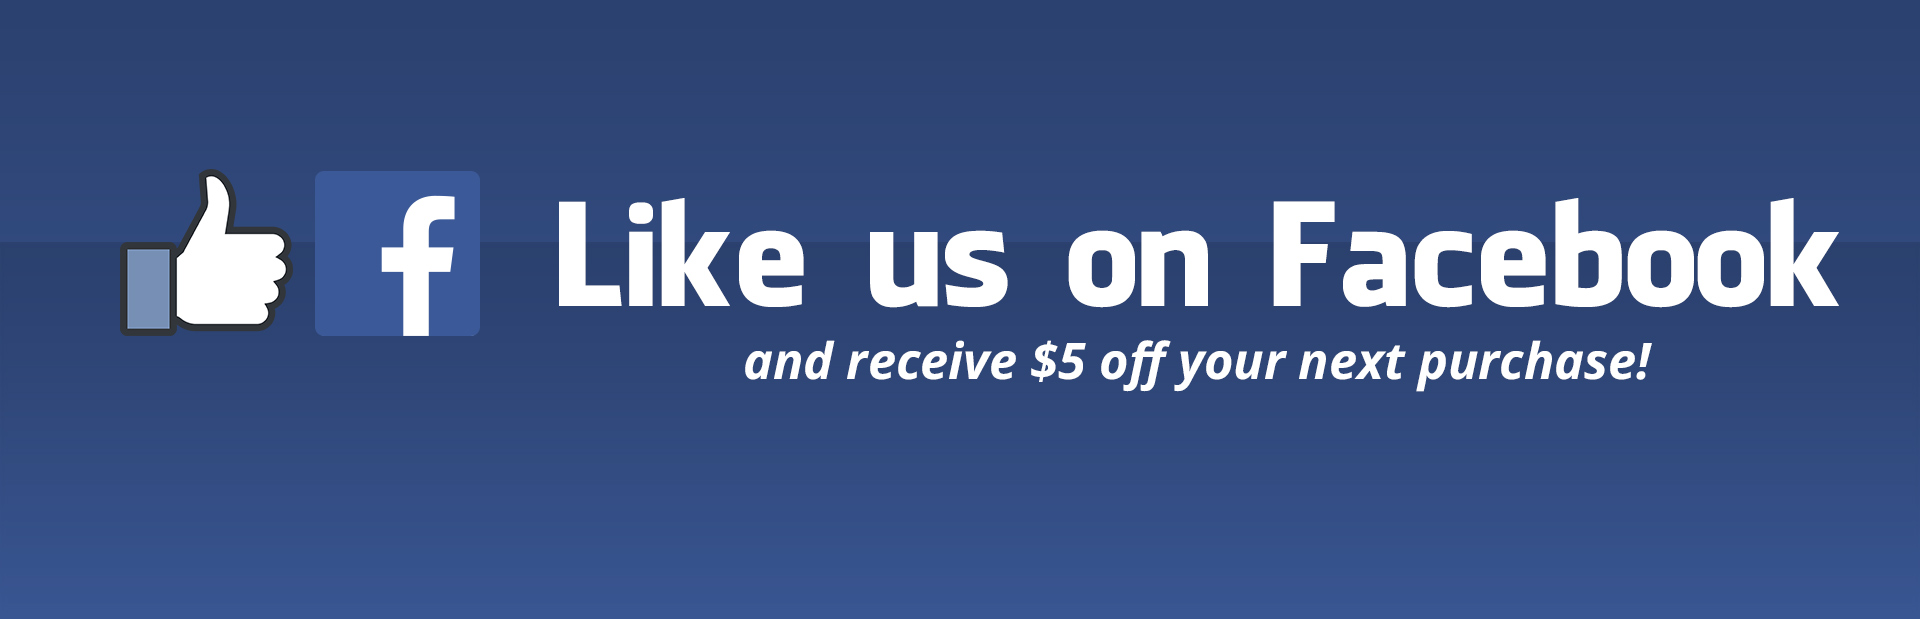 Like us on Facebook and receive $5 off your next purchase!